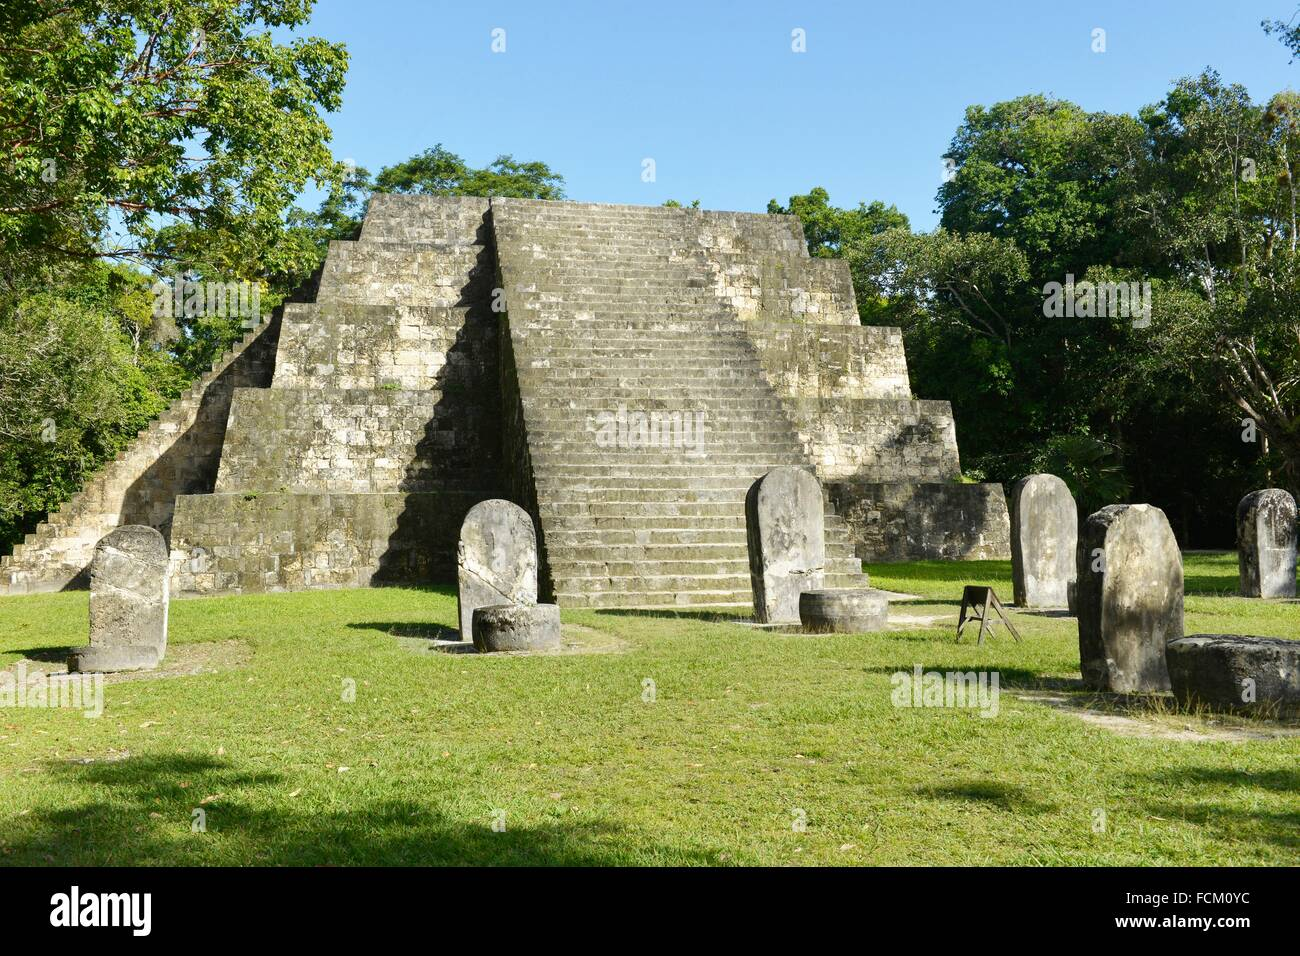 Small pyramid in precolumbian city of Tikal, Peten, Guatemala, Central America. - Stock Image